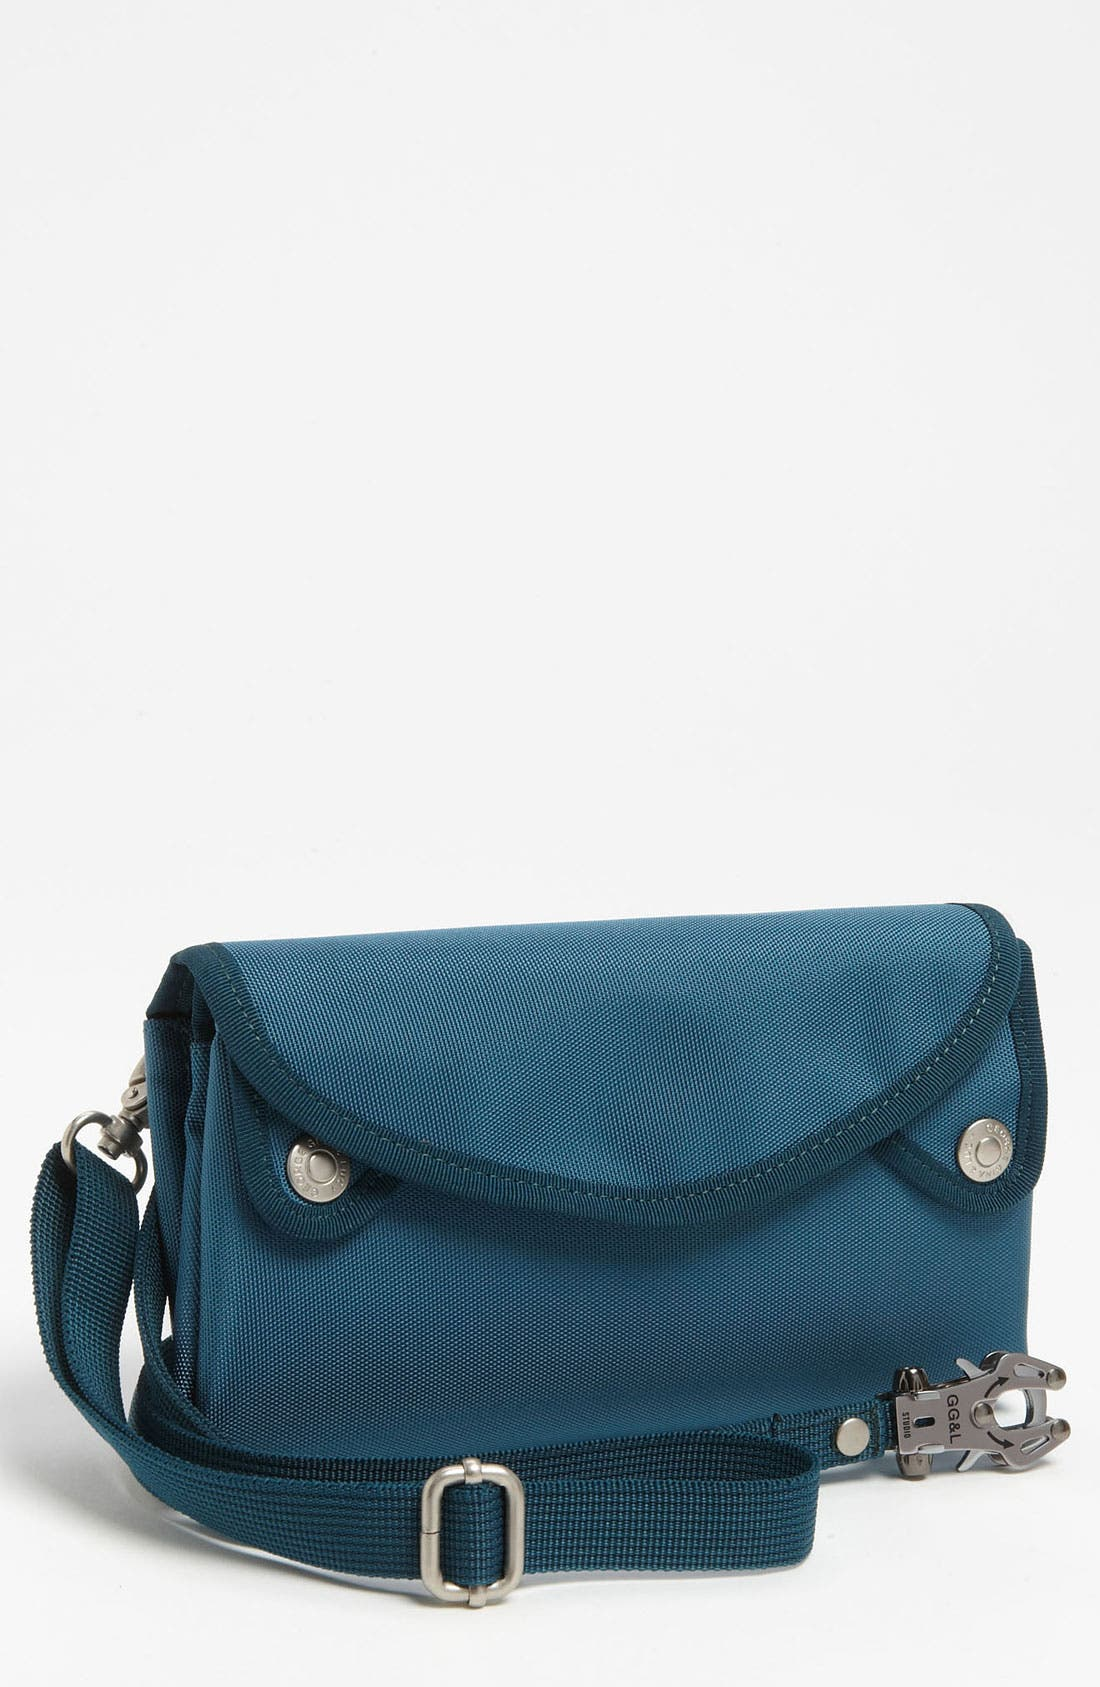 Alternate Image 1 Selected - George Gina & Lucy 'Hold & Fold' Bag